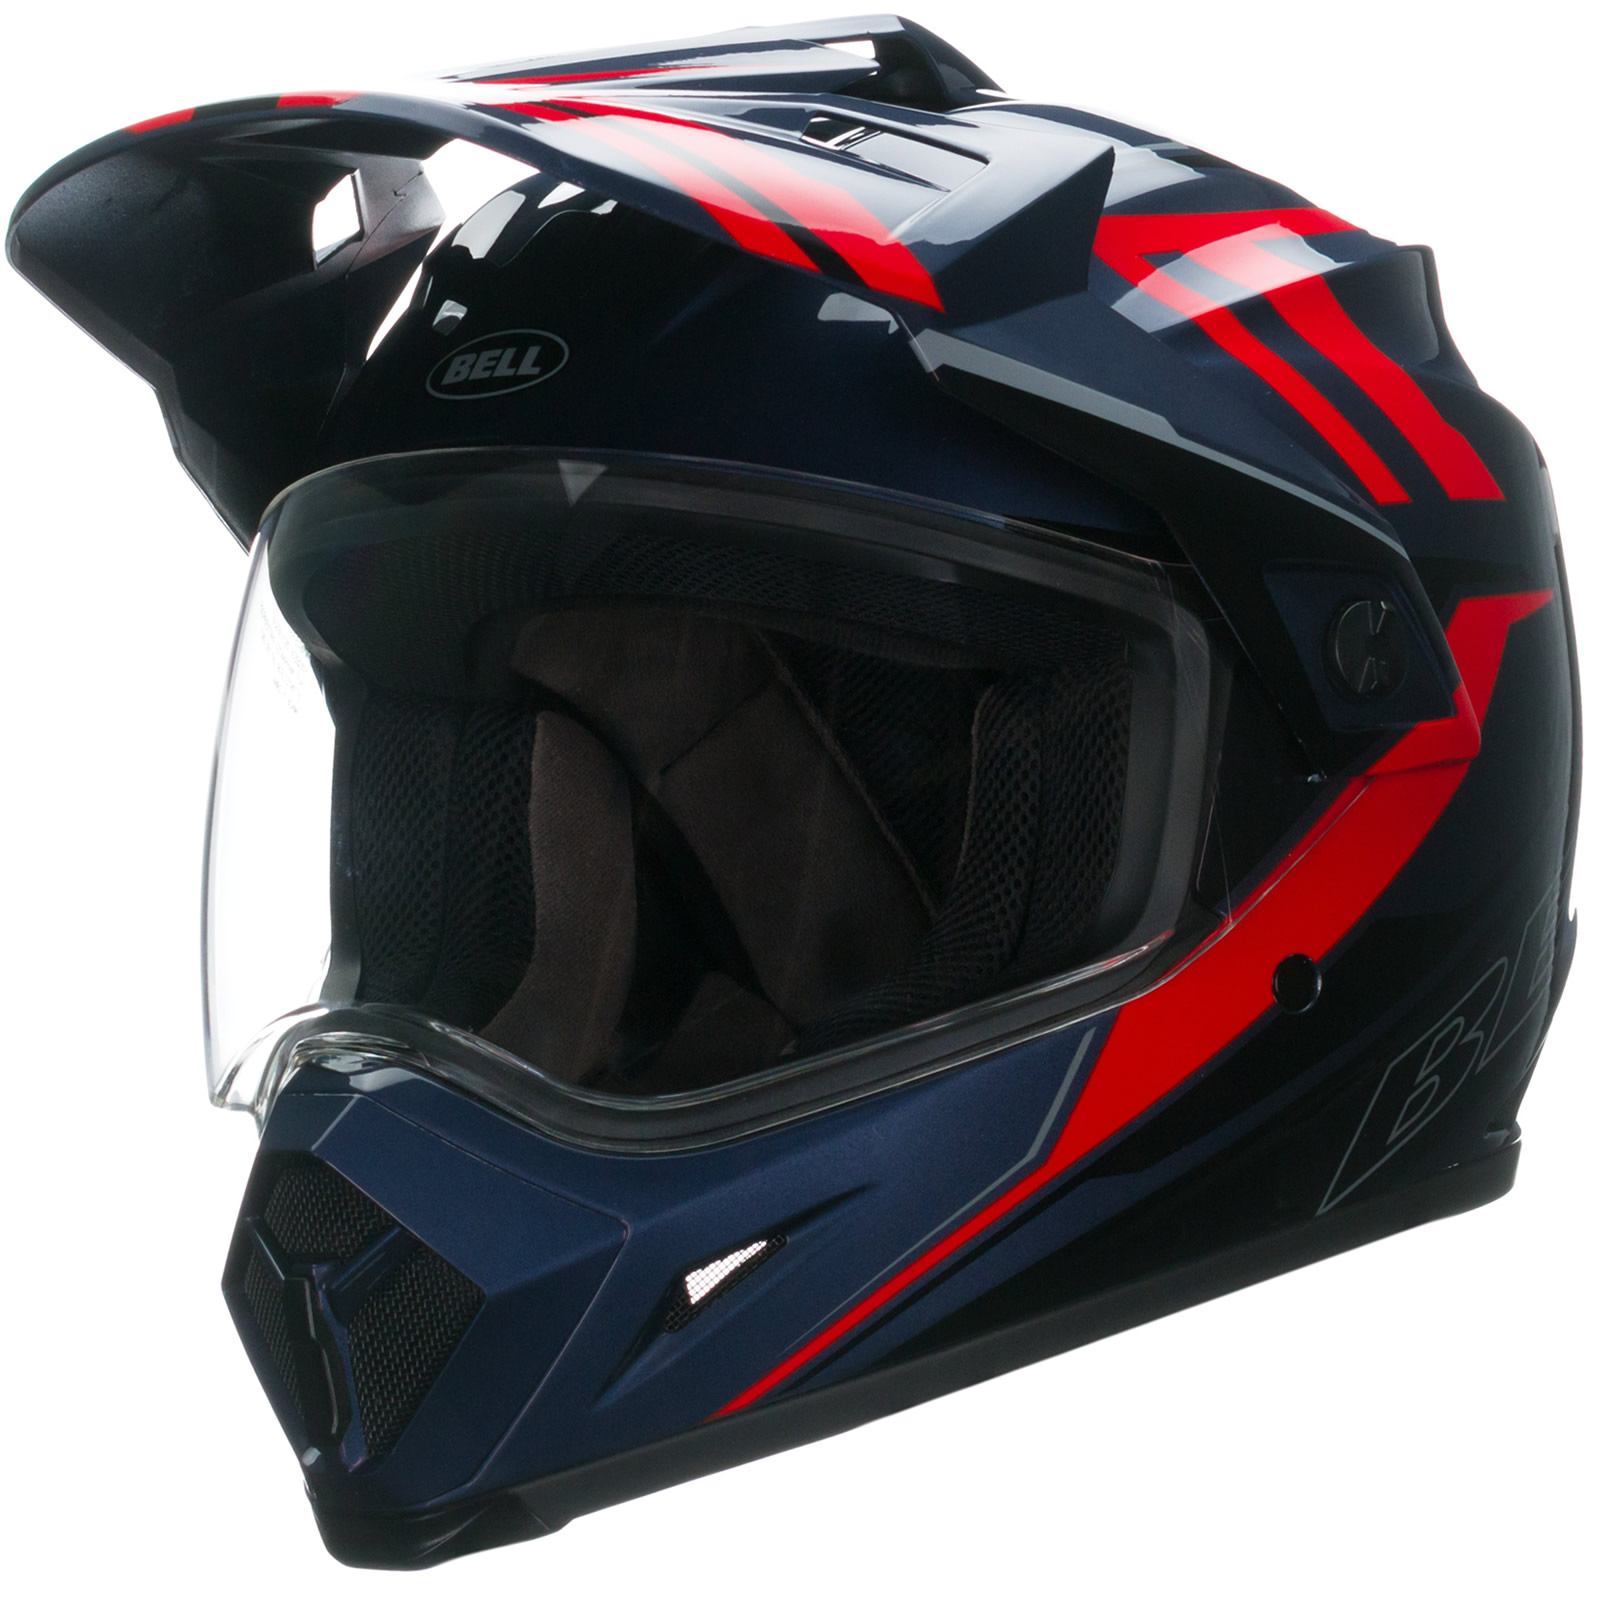 bell mx 9 adventure barricade red motocross helmet quad motox cross mx race lid ebay. Black Bedroom Furniture Sets. Home Design Ideas